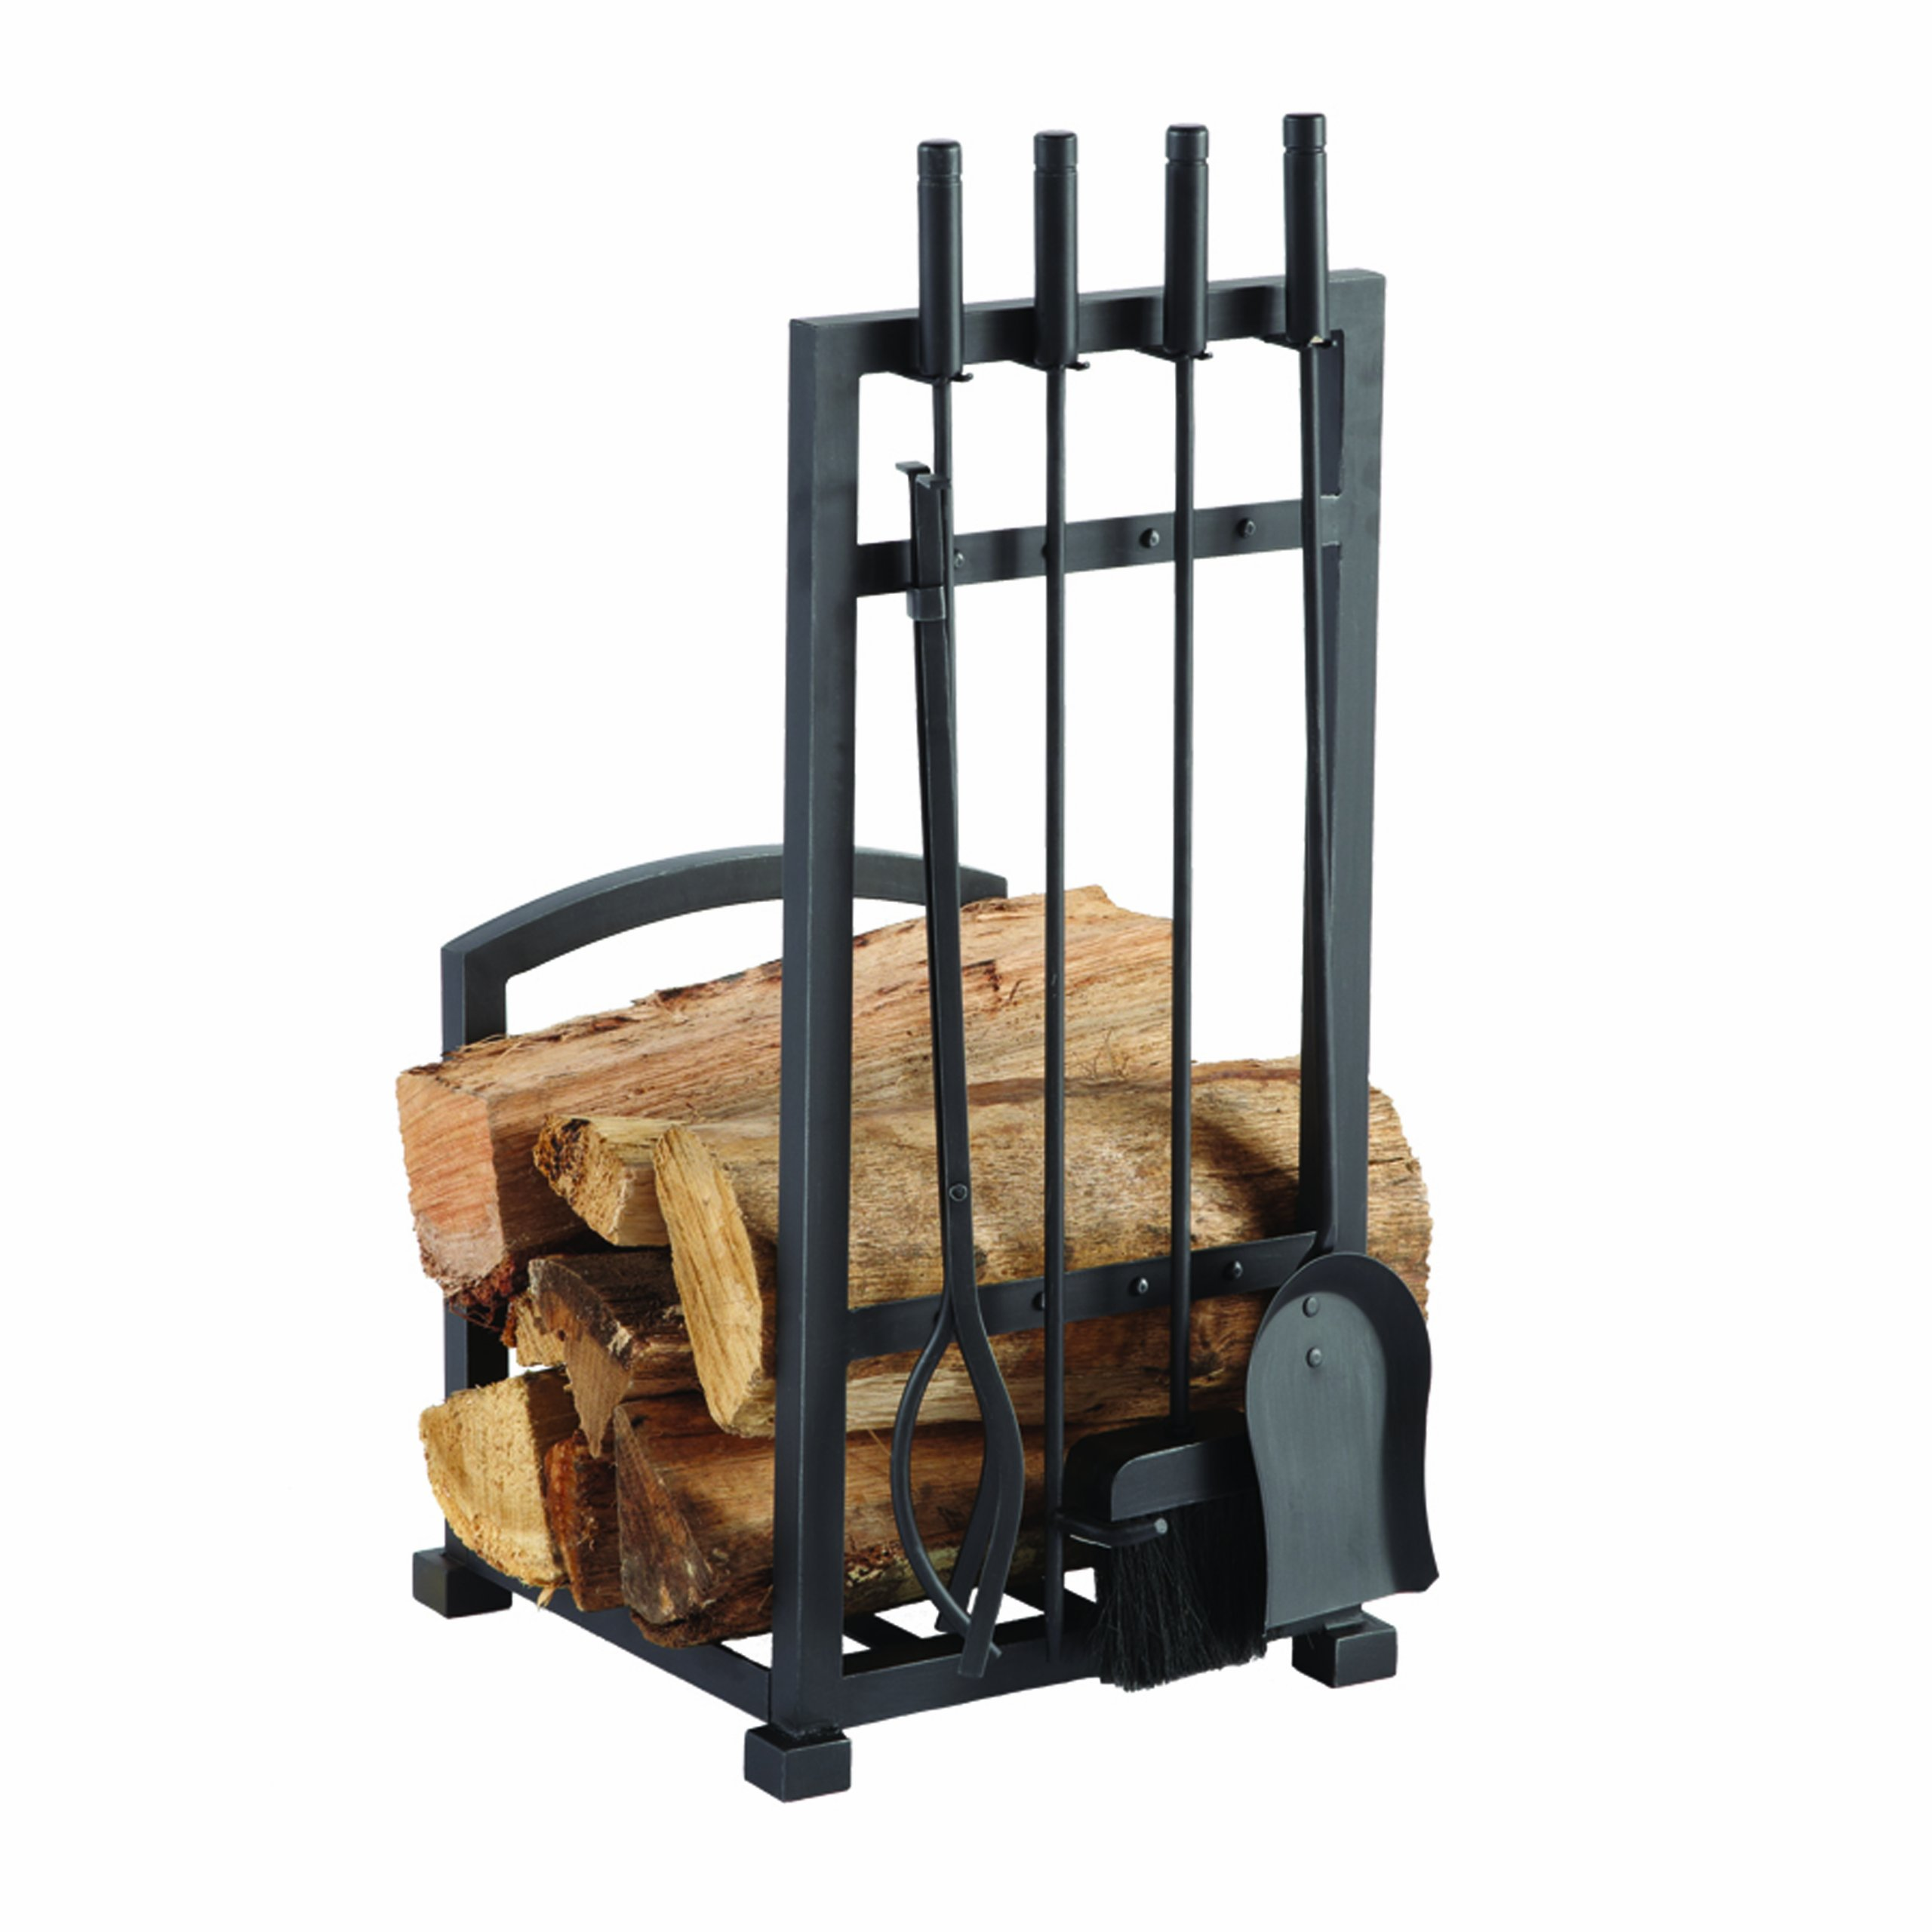 Pleasant Hearth 4 Piece Harper Fireplace Toolset with Log holder by Pleasant Hearth